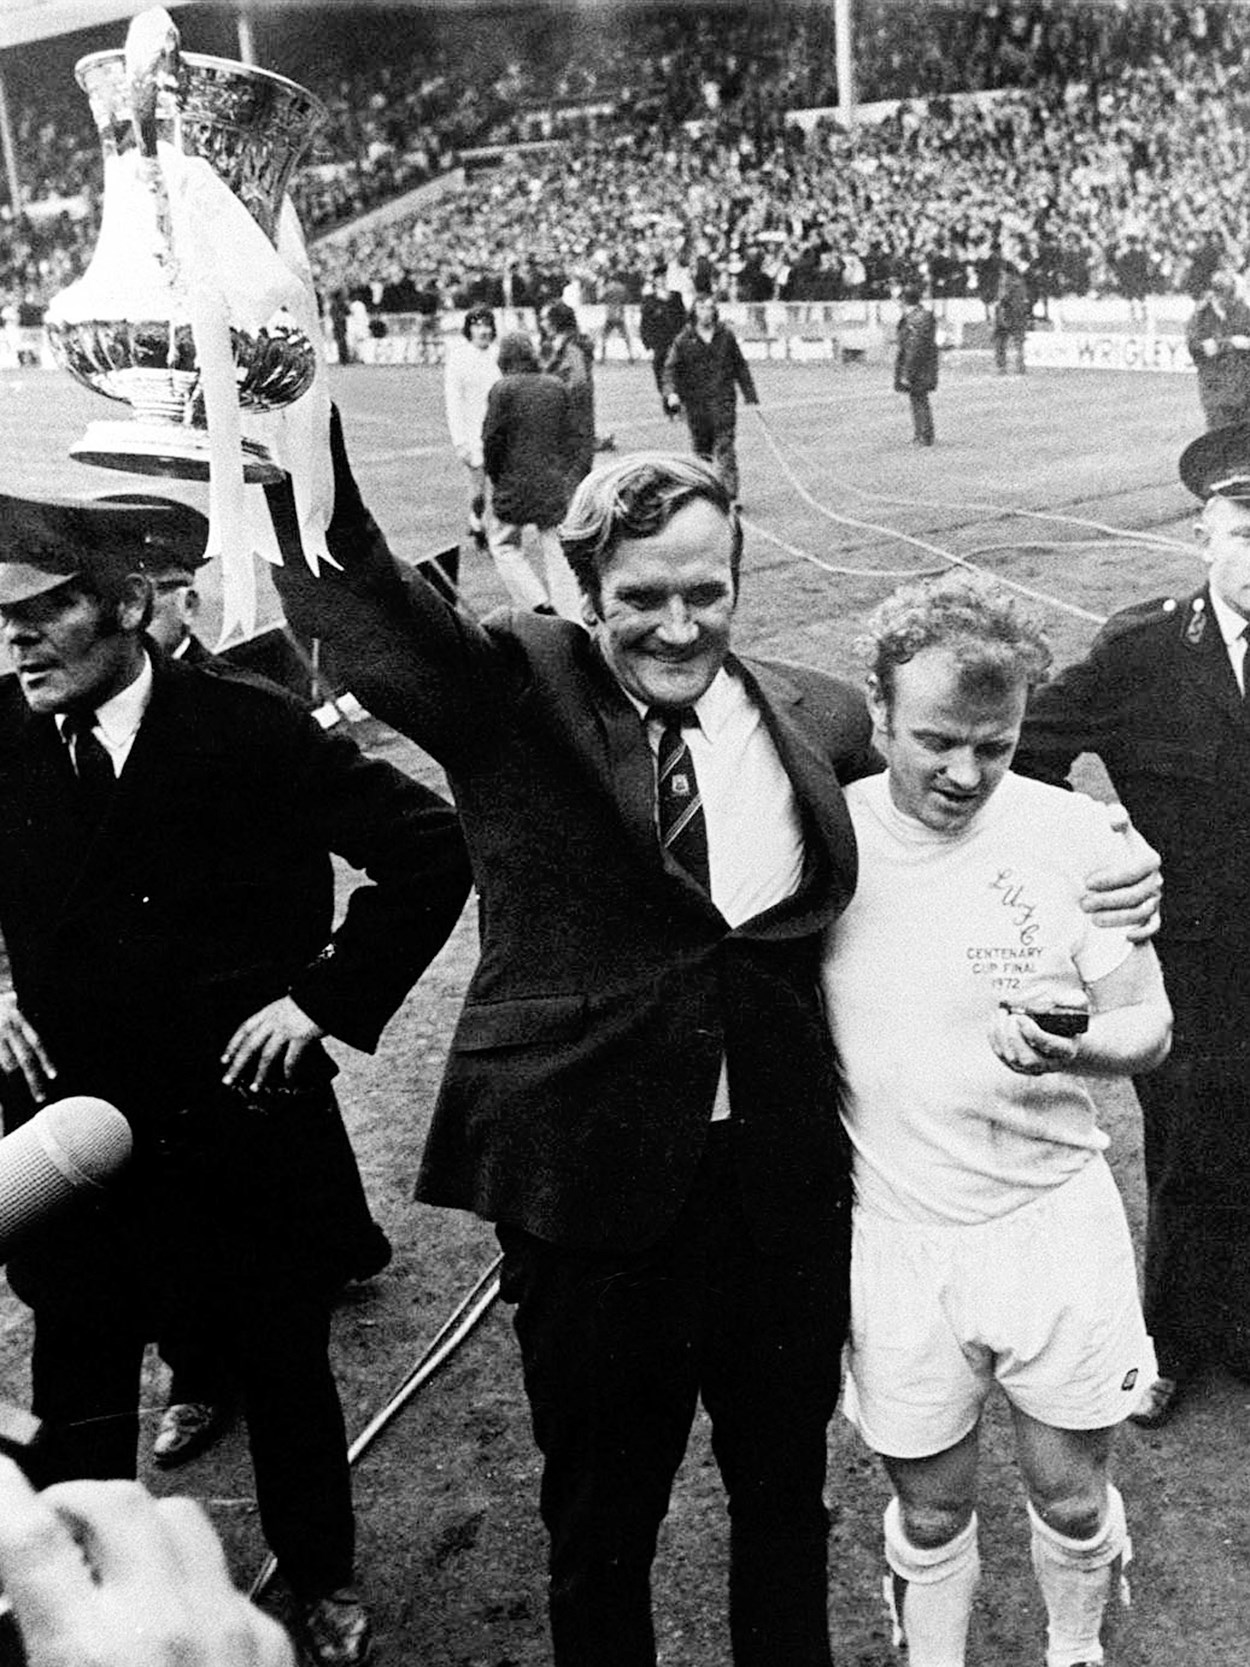 Don Revie and Billy Bremner 1972. Image: © Varley Picture Agency: Don Revie manager of Leeds United holding aloft the FA Cup in 1972 after the team beat rivals Arsenal 1-0 in the cup final. He is embracing the captain, Billy Bremner. Image: © Varley Picture Agency.